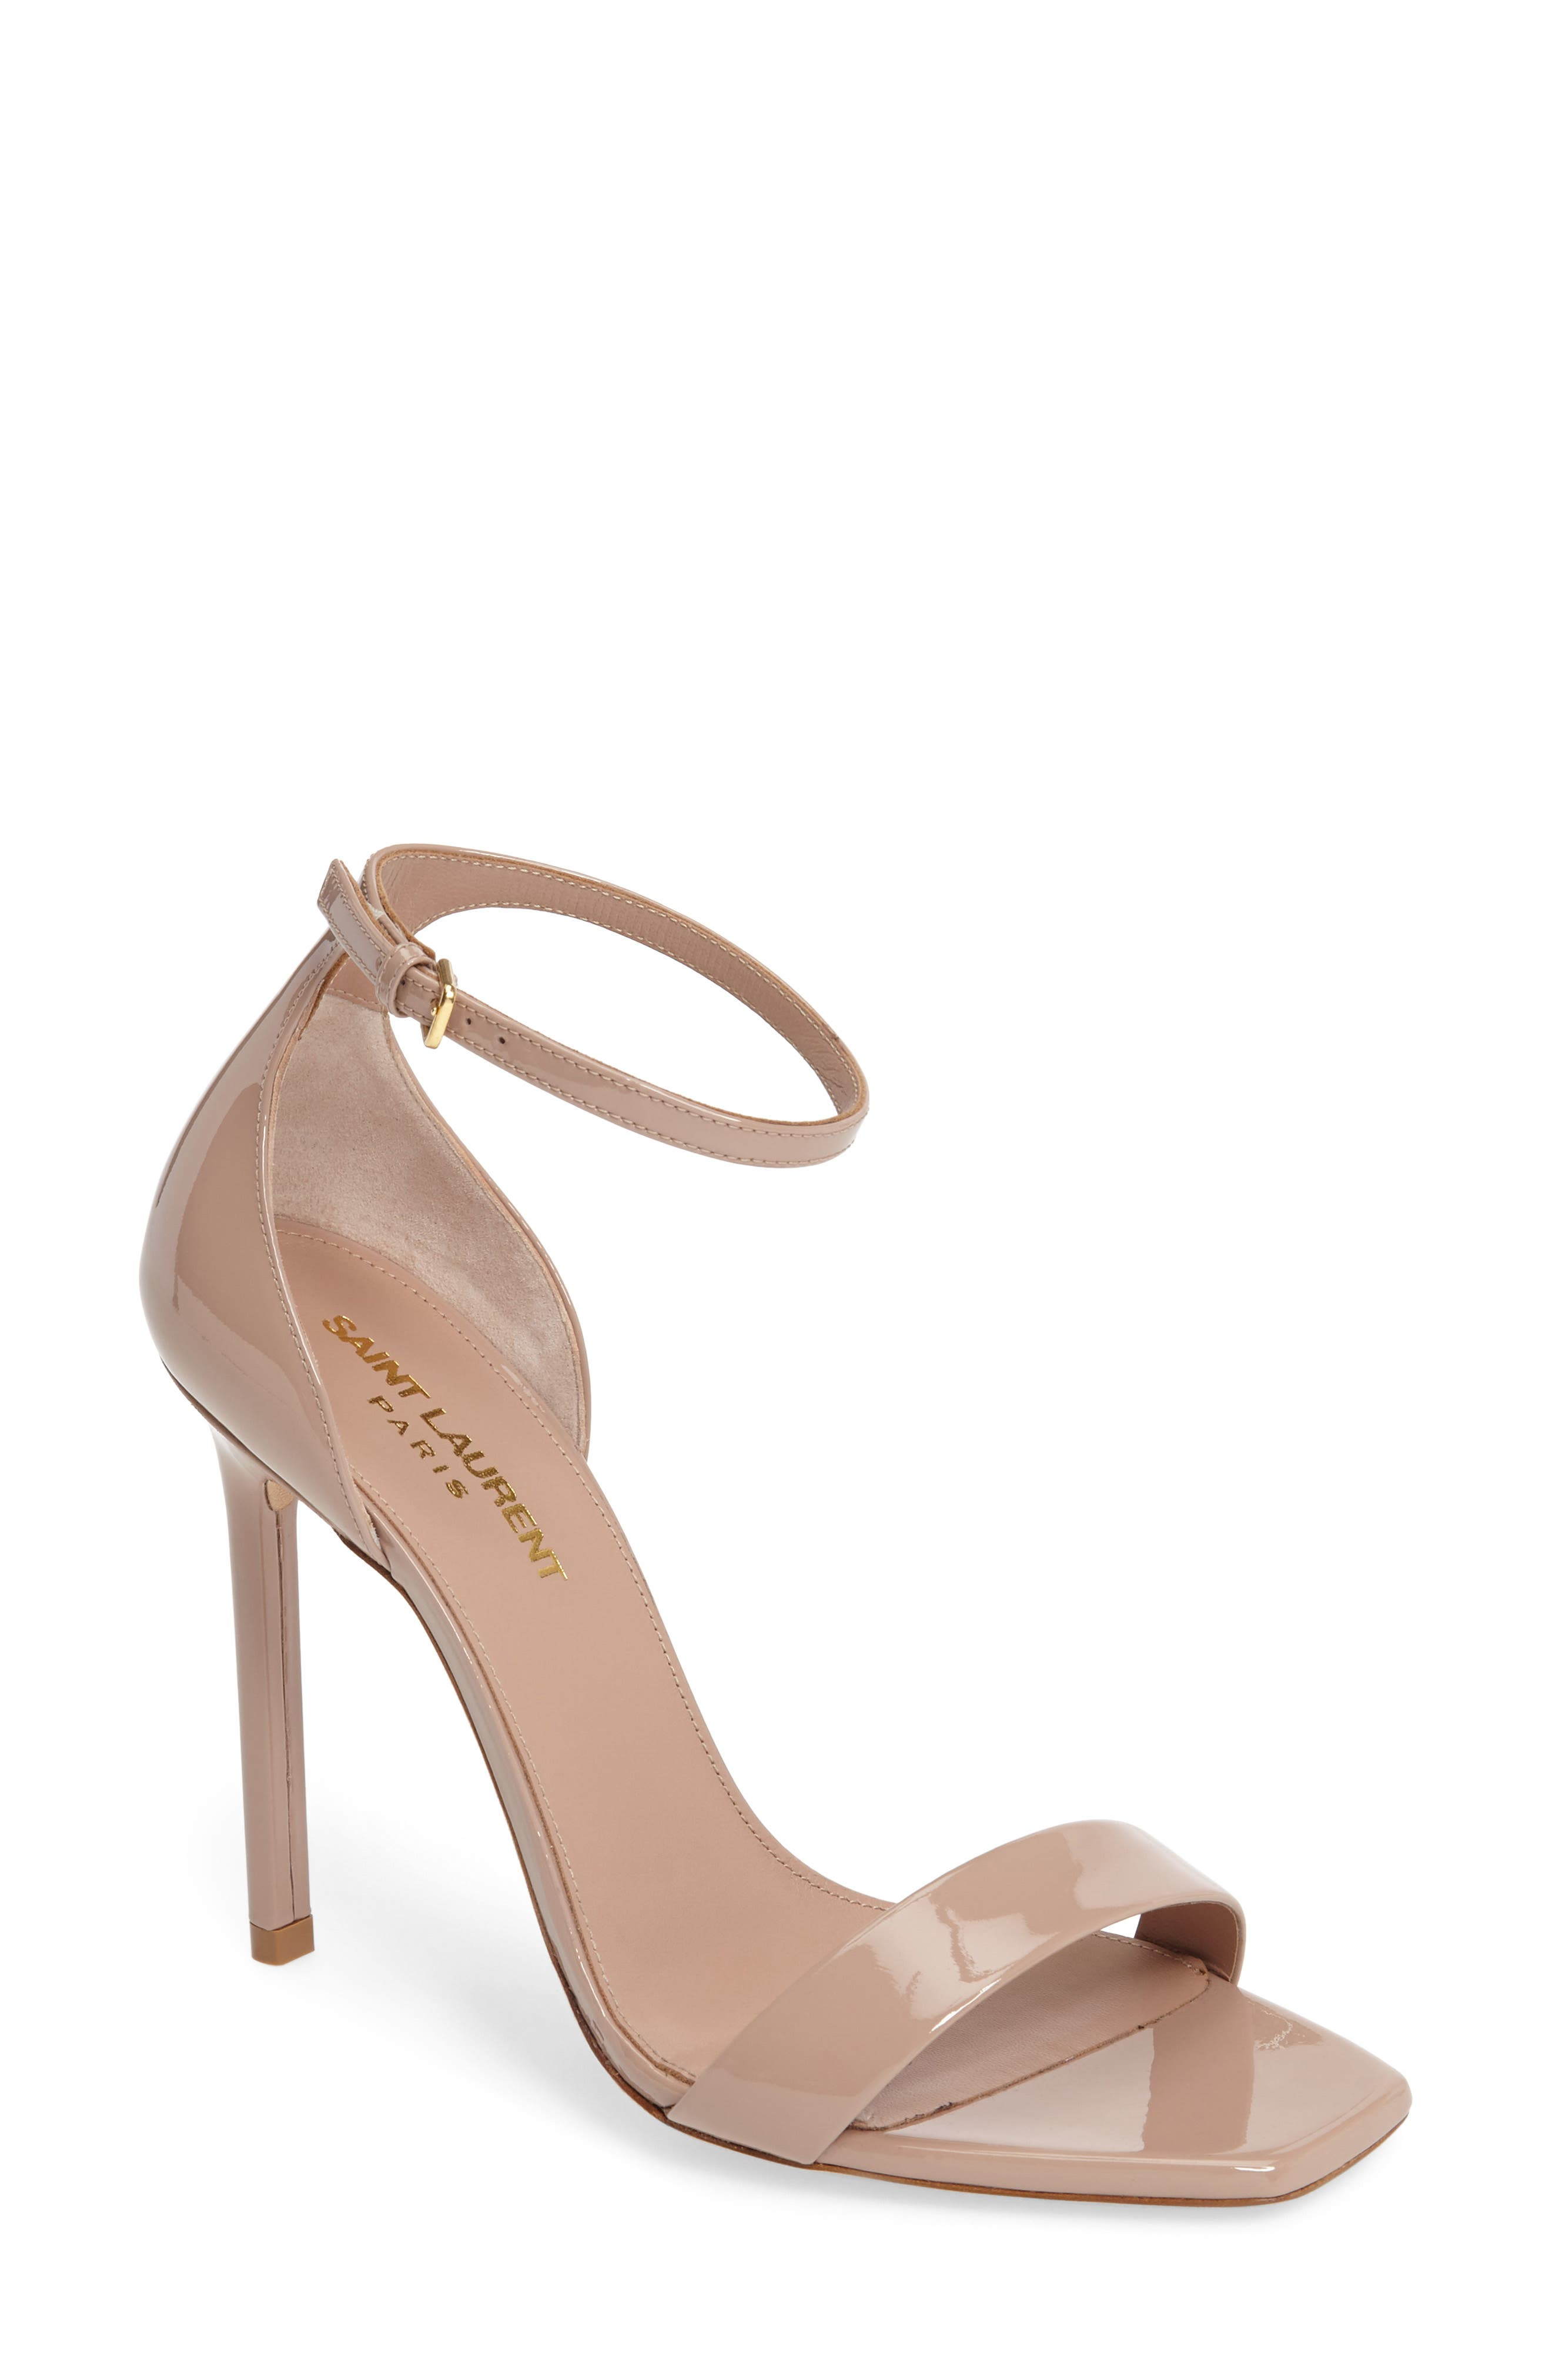 Amber Ankle Strap Sandal,                         Main,                         color, NUDE PATENT